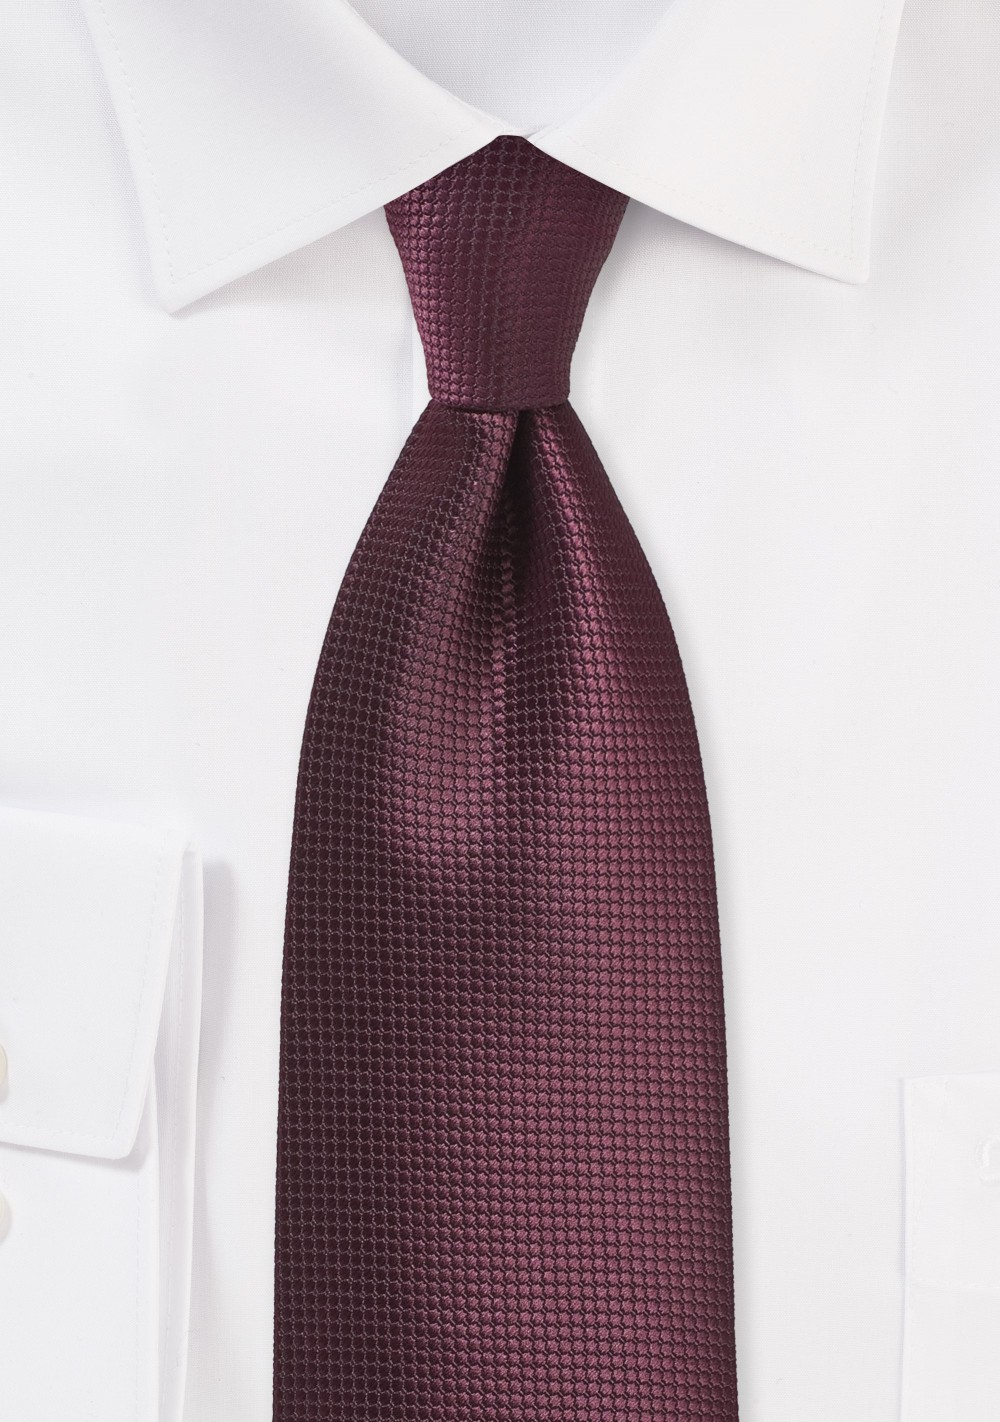 Port Red Colored Tie in XL